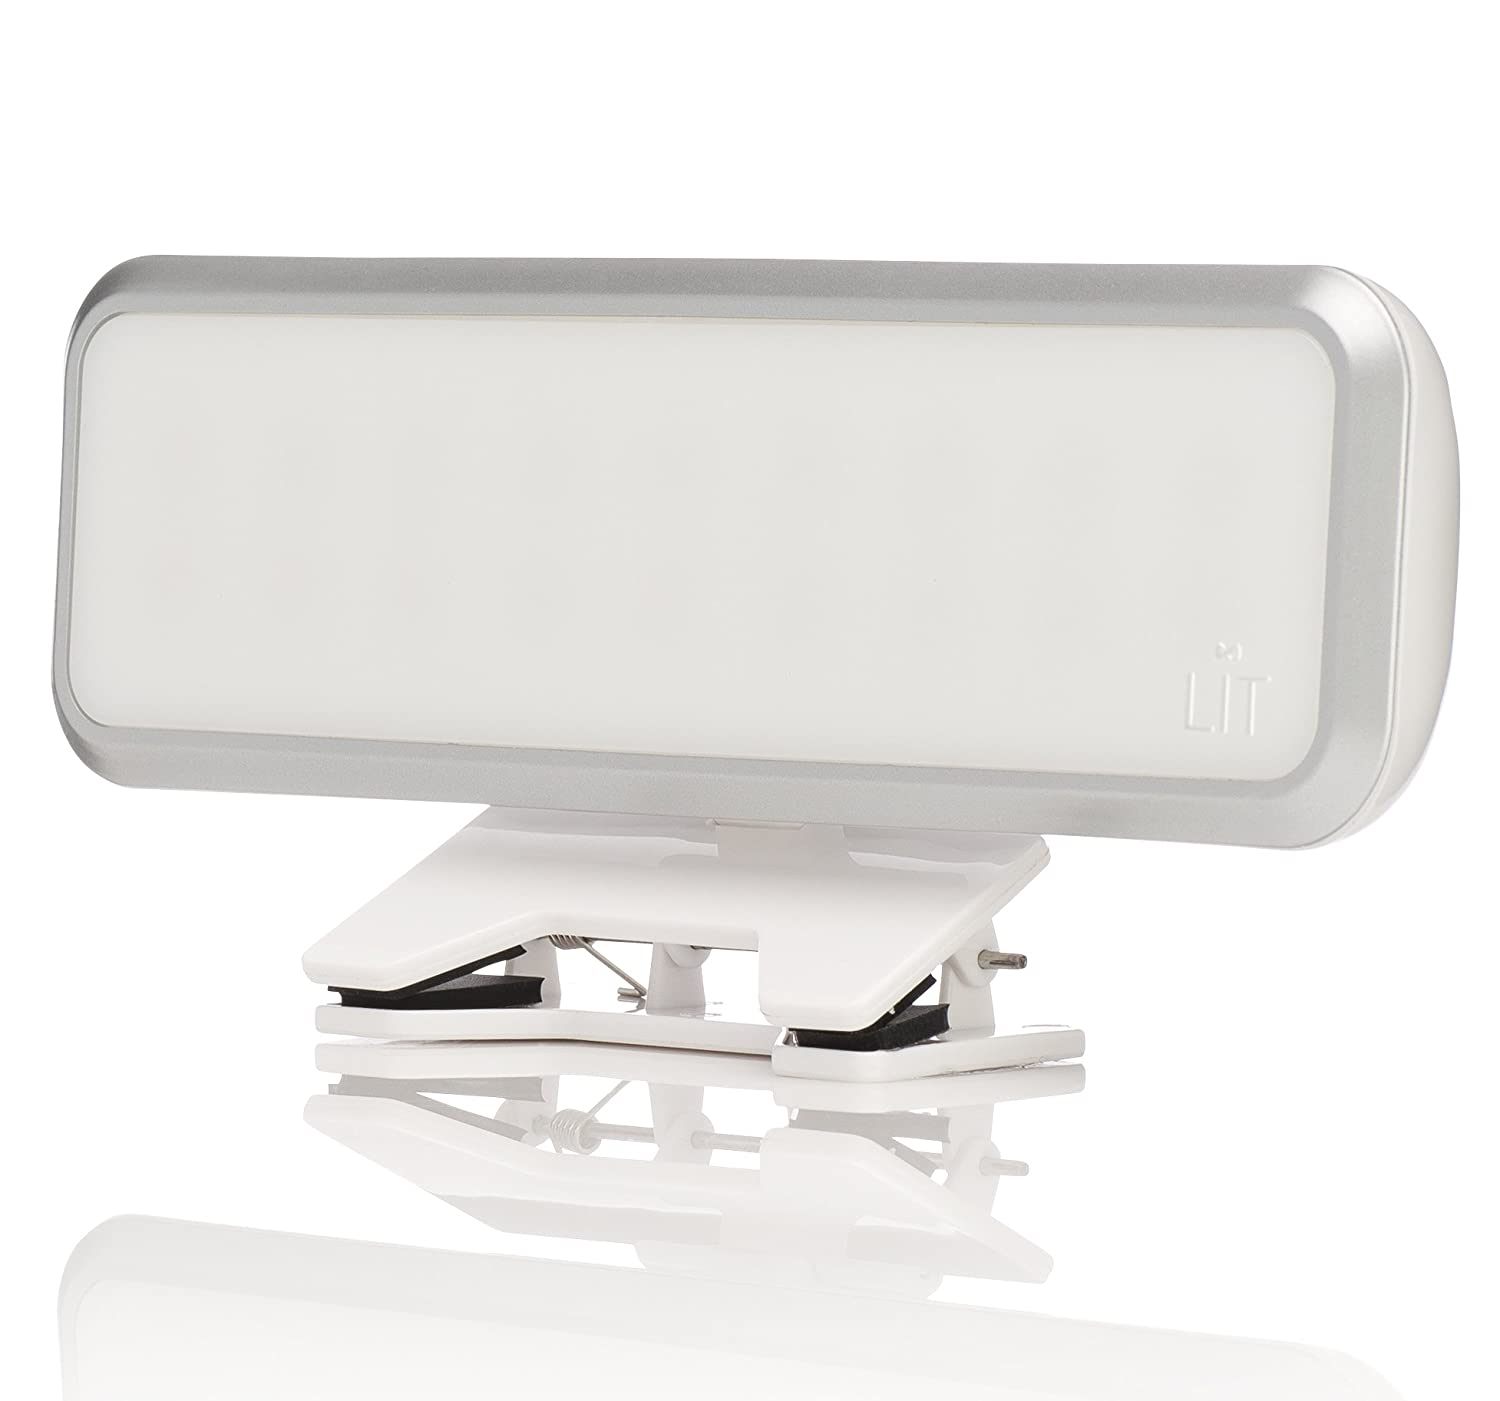 LIT Clip on Camera Light for Cell Phones, Tablets, Computers, Laptops - Features 18 LEDs, Dimmer & Diffuser - Rechargeable Selfie Light - for iPhone, iPad, Samsung Galaxy, and more - White